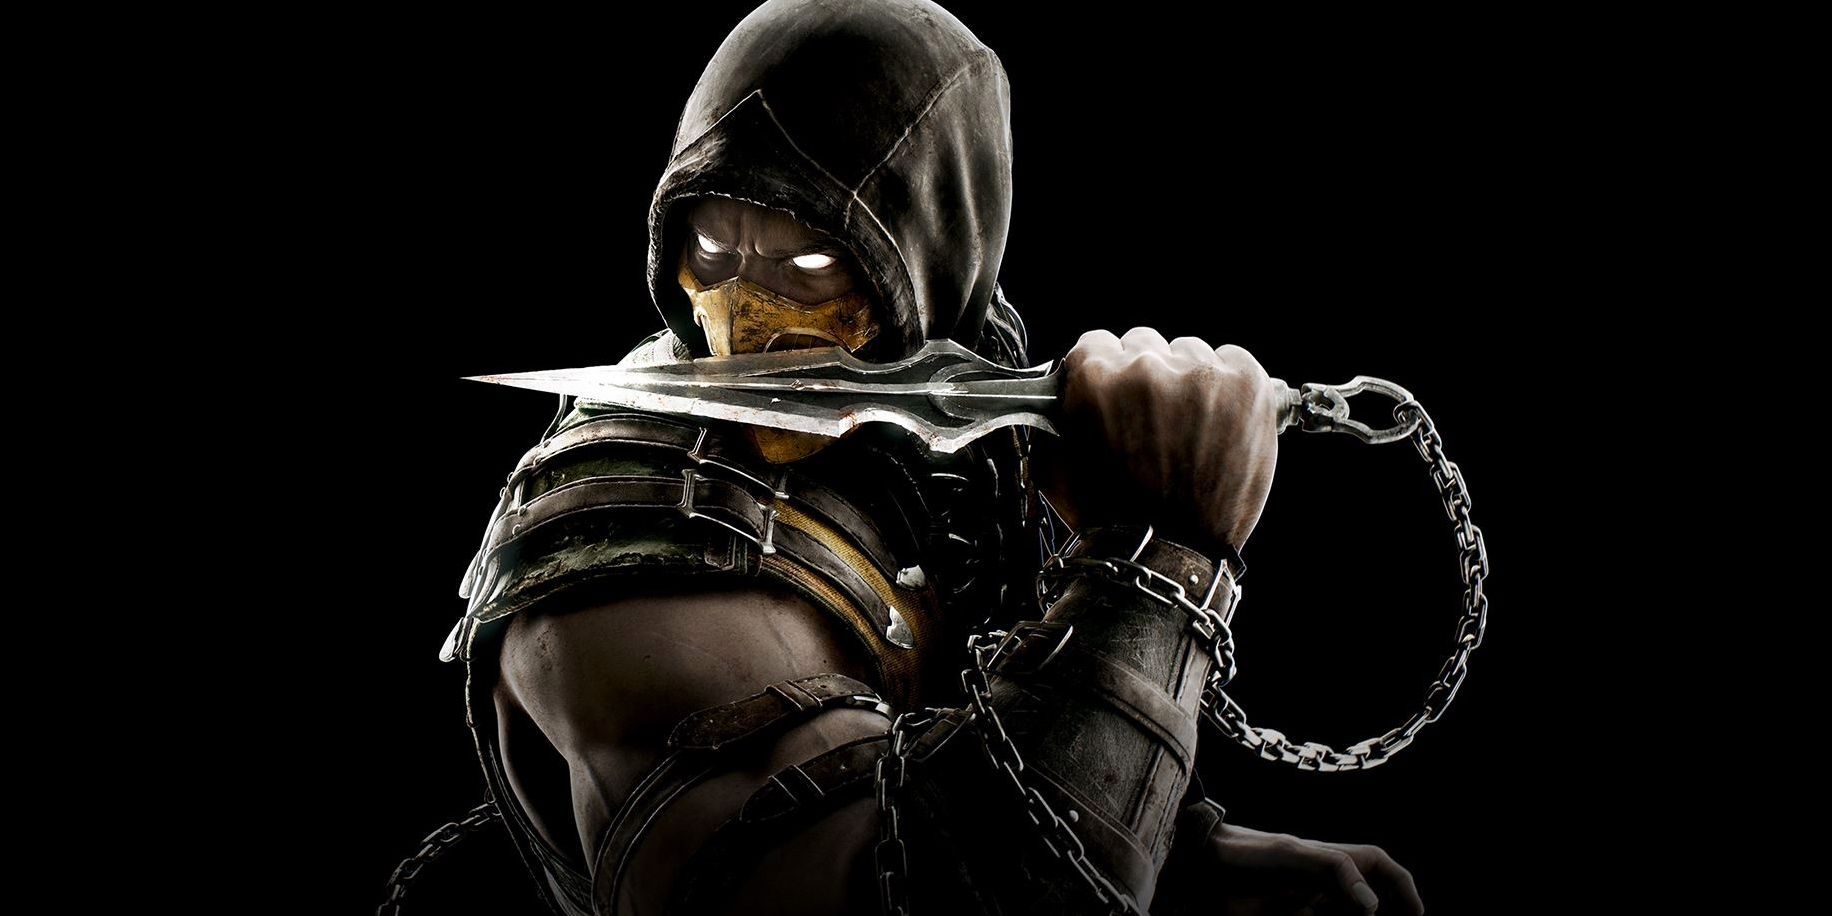 Mortal Kombat: 15 Things You Never Knew About Scorpion